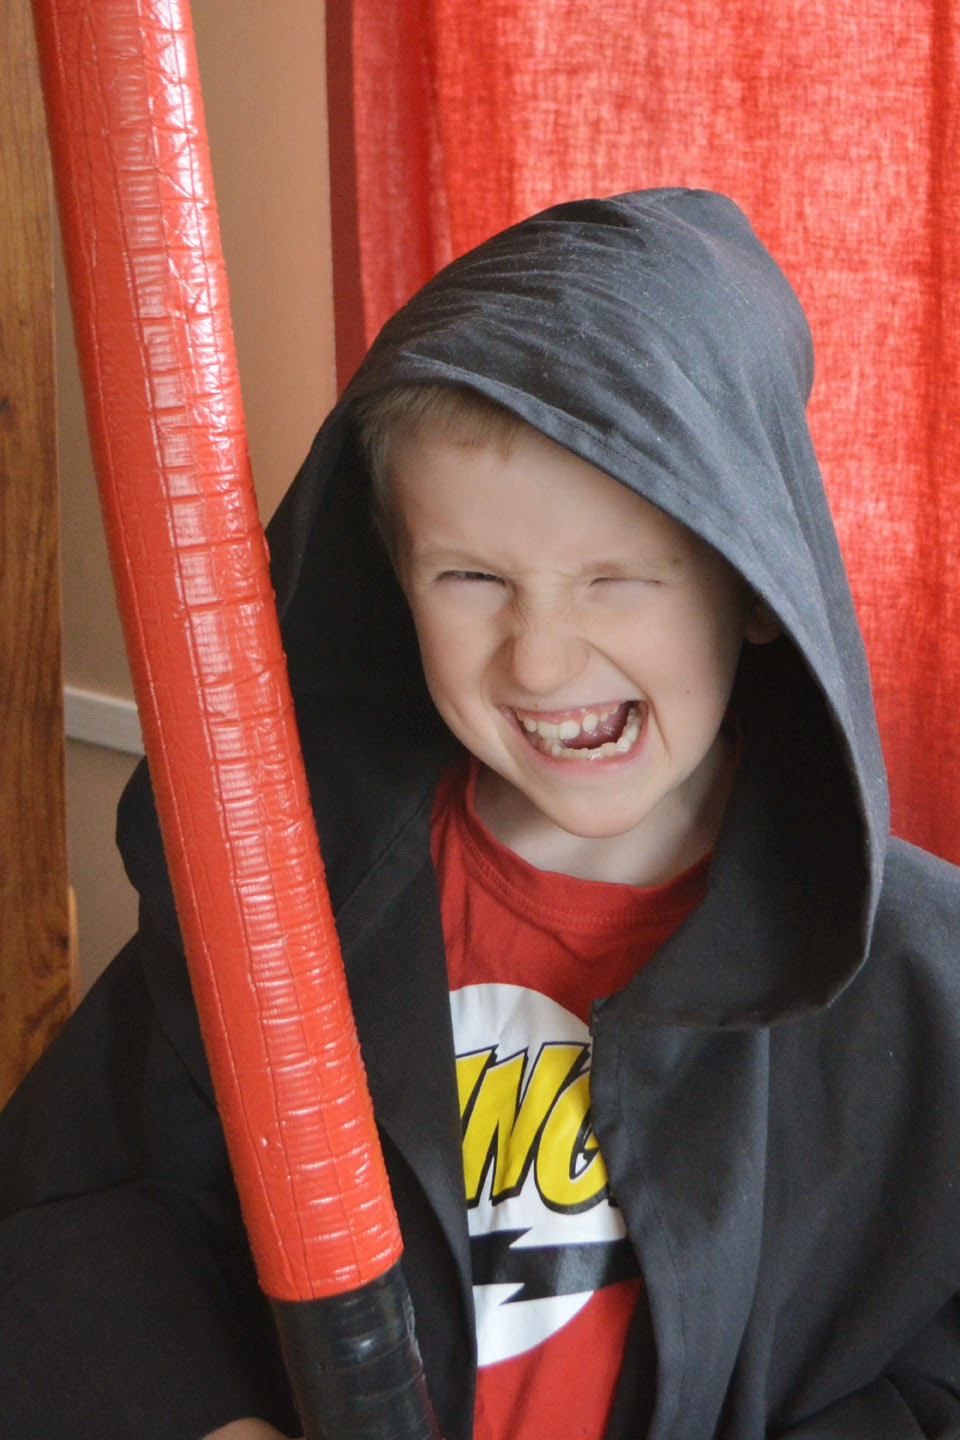 """Give me a Sith Snarl!"" I said. And he did... kinda. What IS that, anyway?!!"